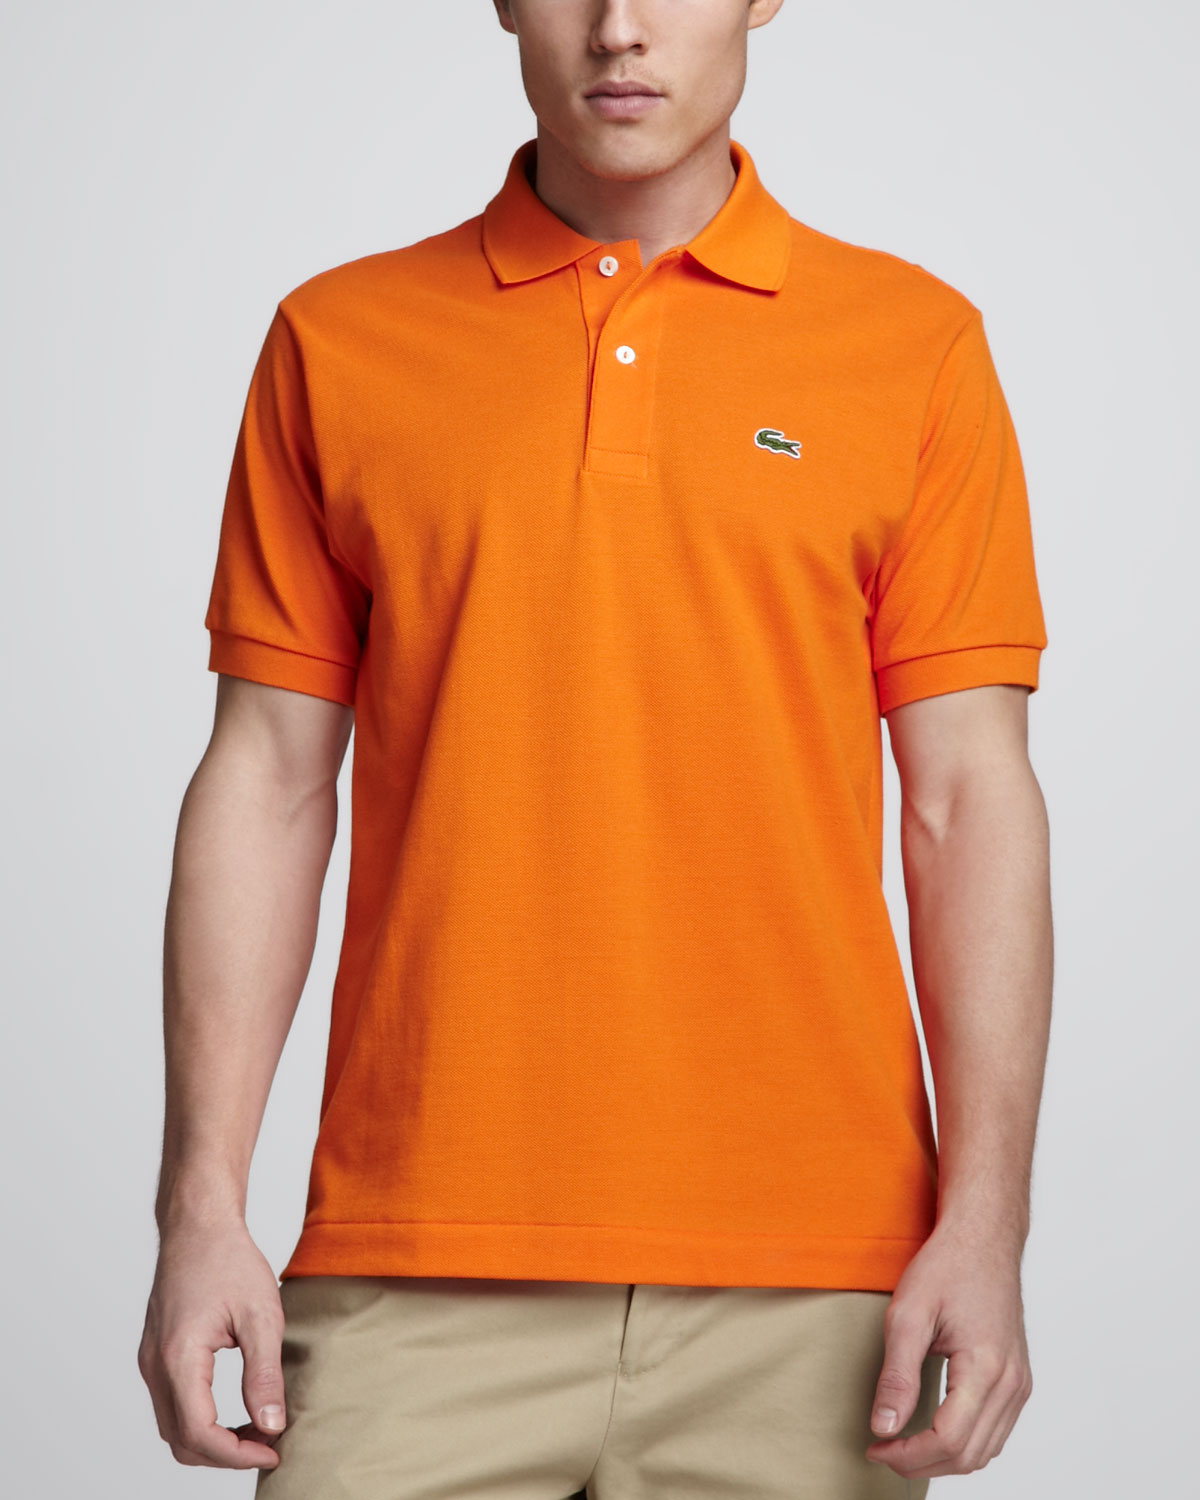 lyst lacoste orange ss pique polo in orange for men. Black Bedroom Furniture Sets. Home Design Ideas